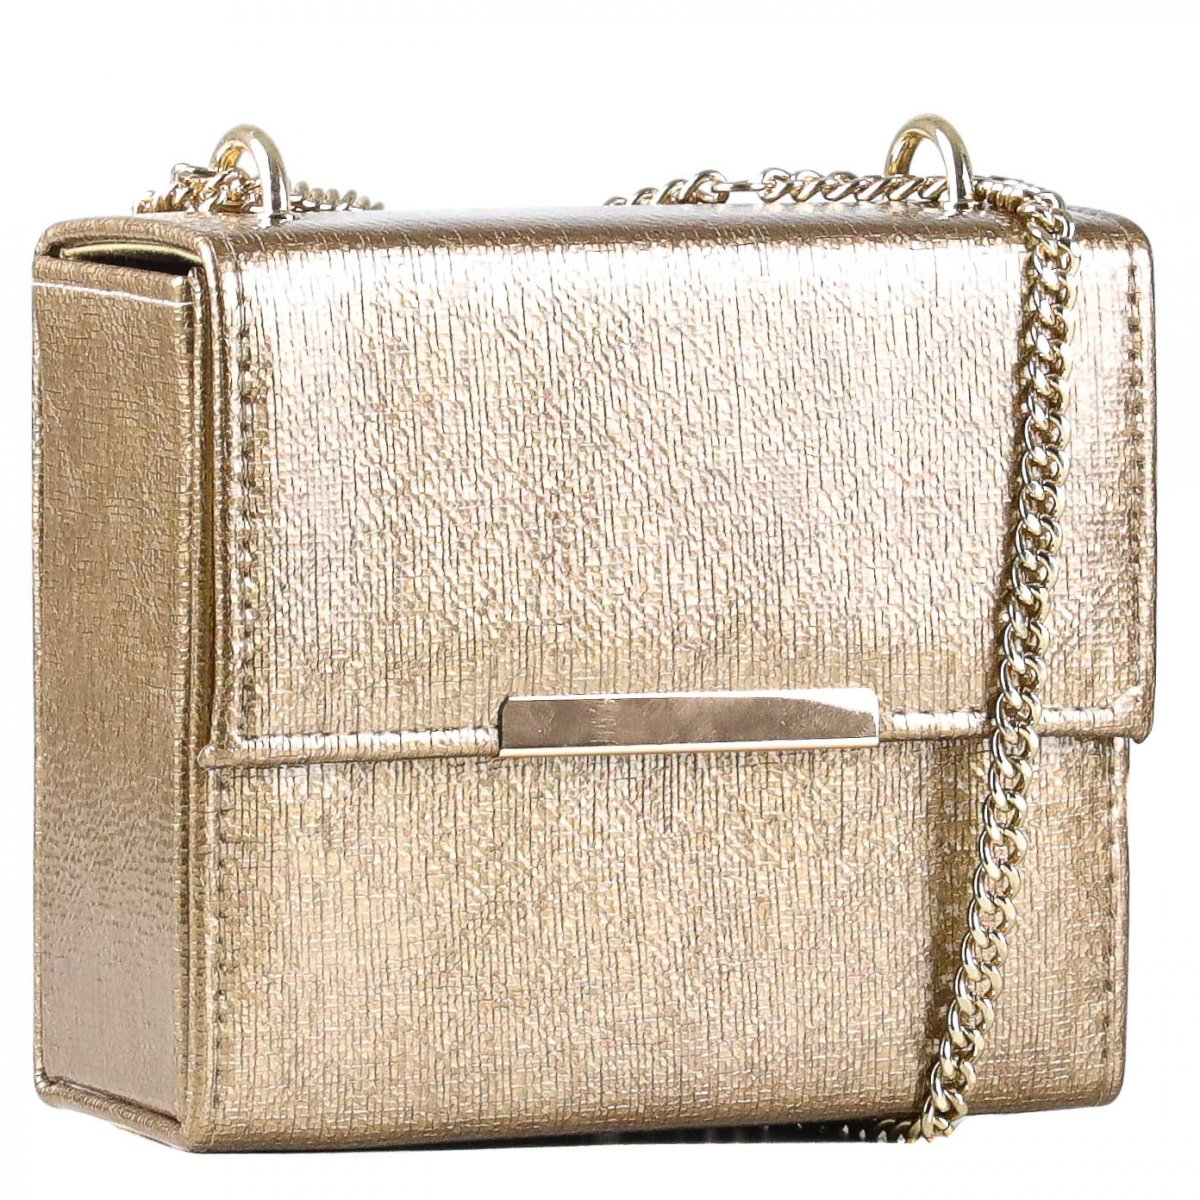 Bolsa Zariff Shoes Box Corrente Dourado